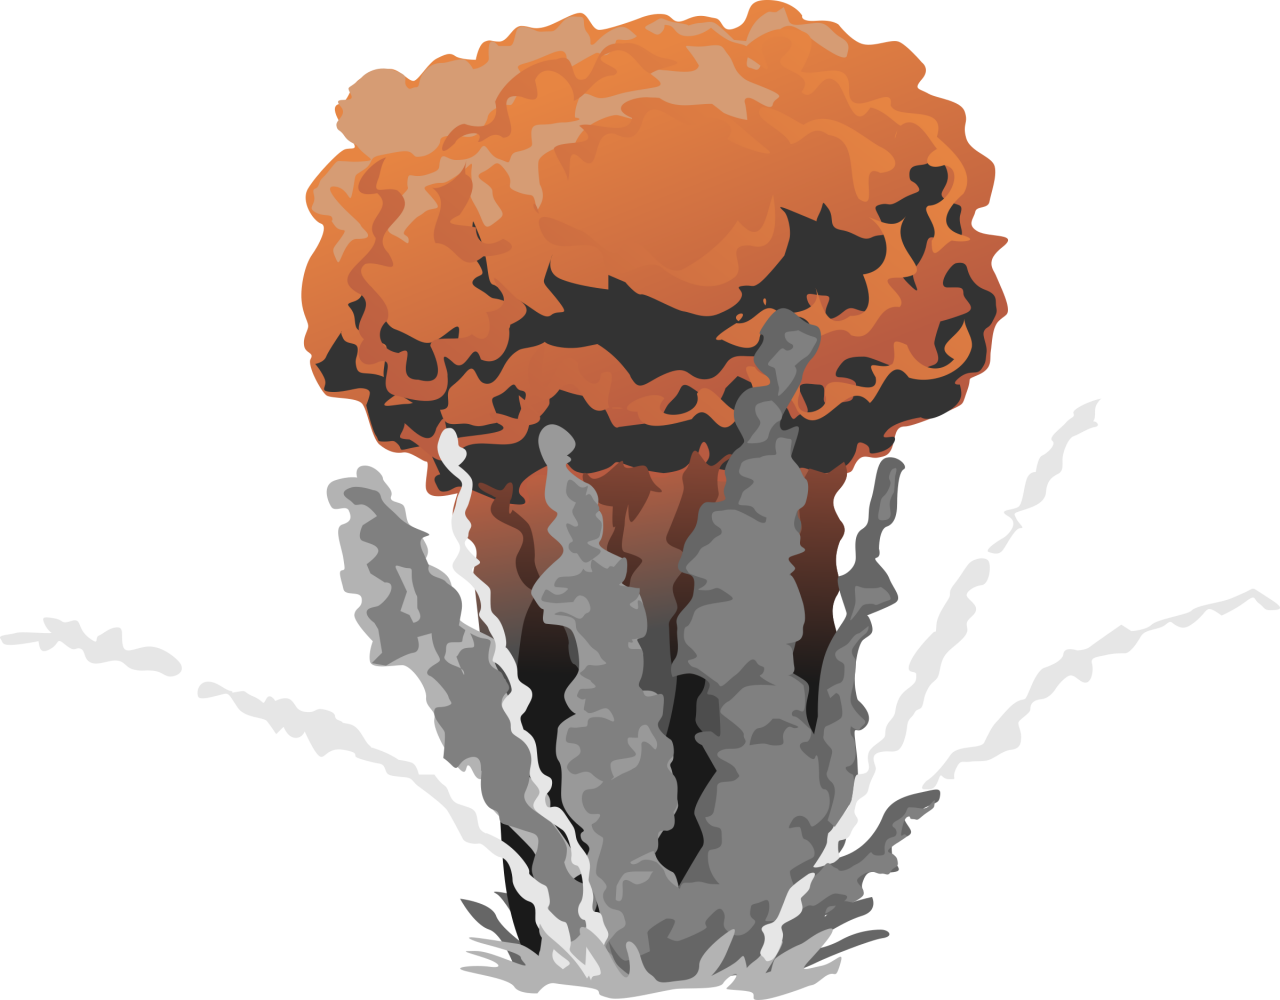 uploads nuclear explosion nuclear explosion PNG29 65